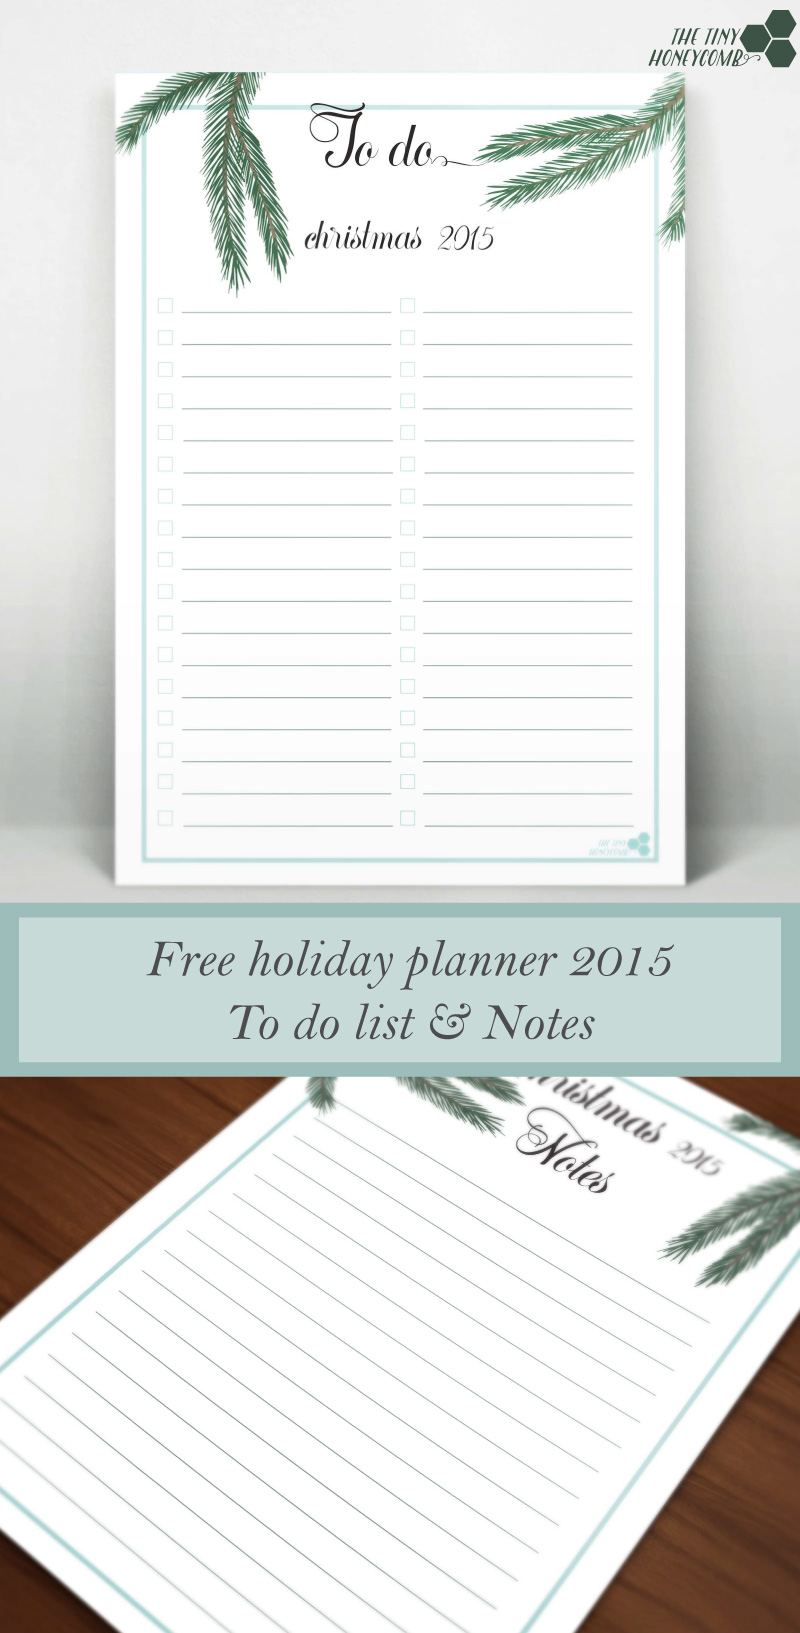 Notes and To do Printable lists for this christmas. Free Christmas planner 2015